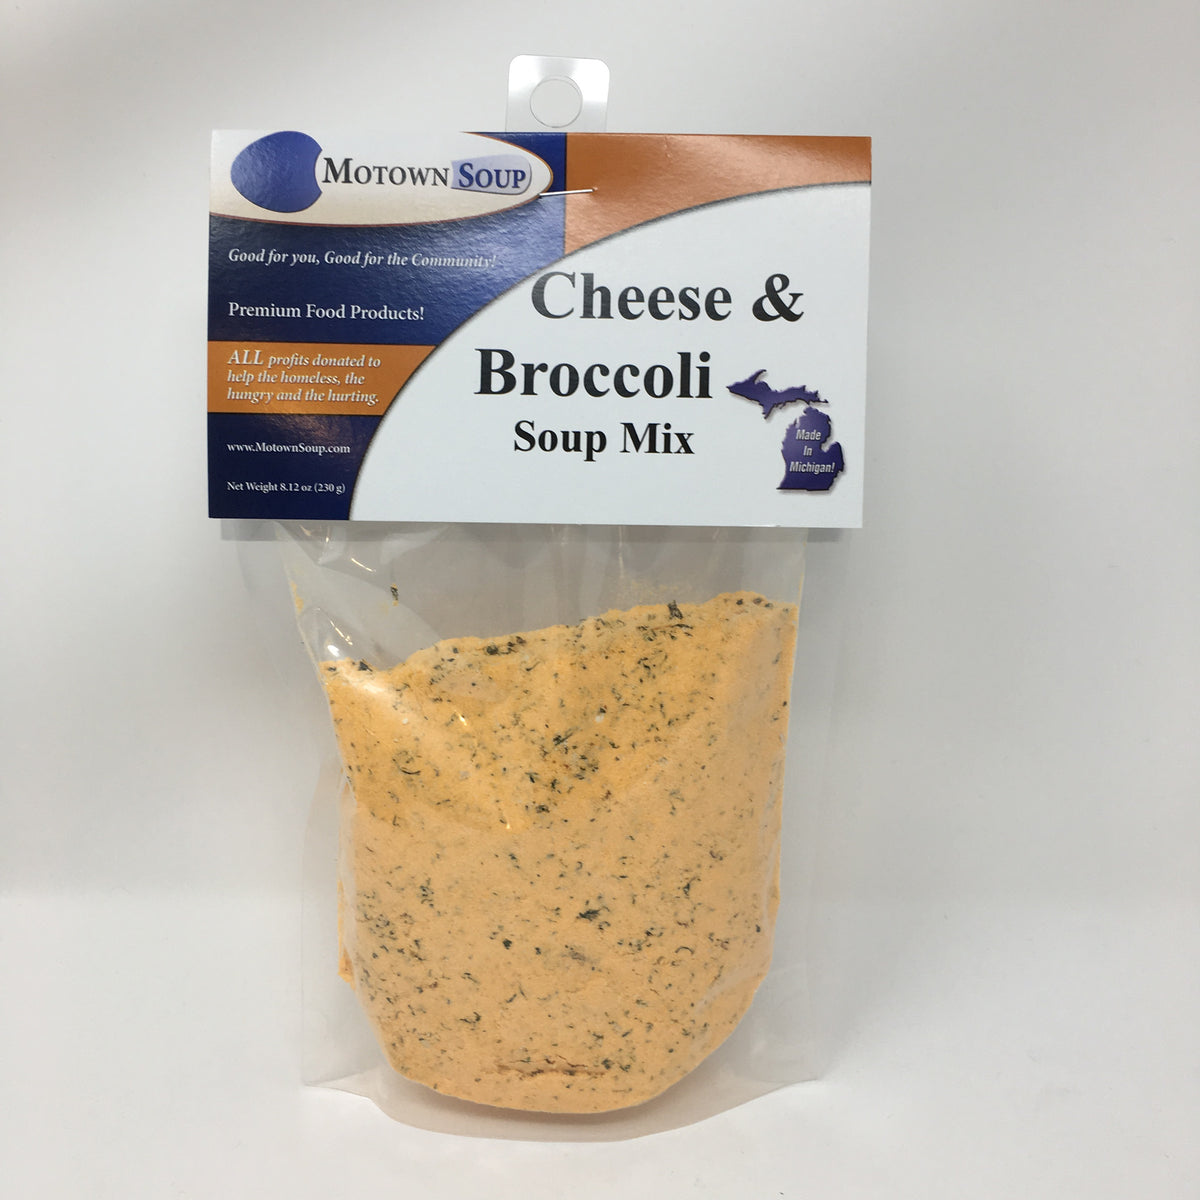 Motown Cheese & Broccoli Soup